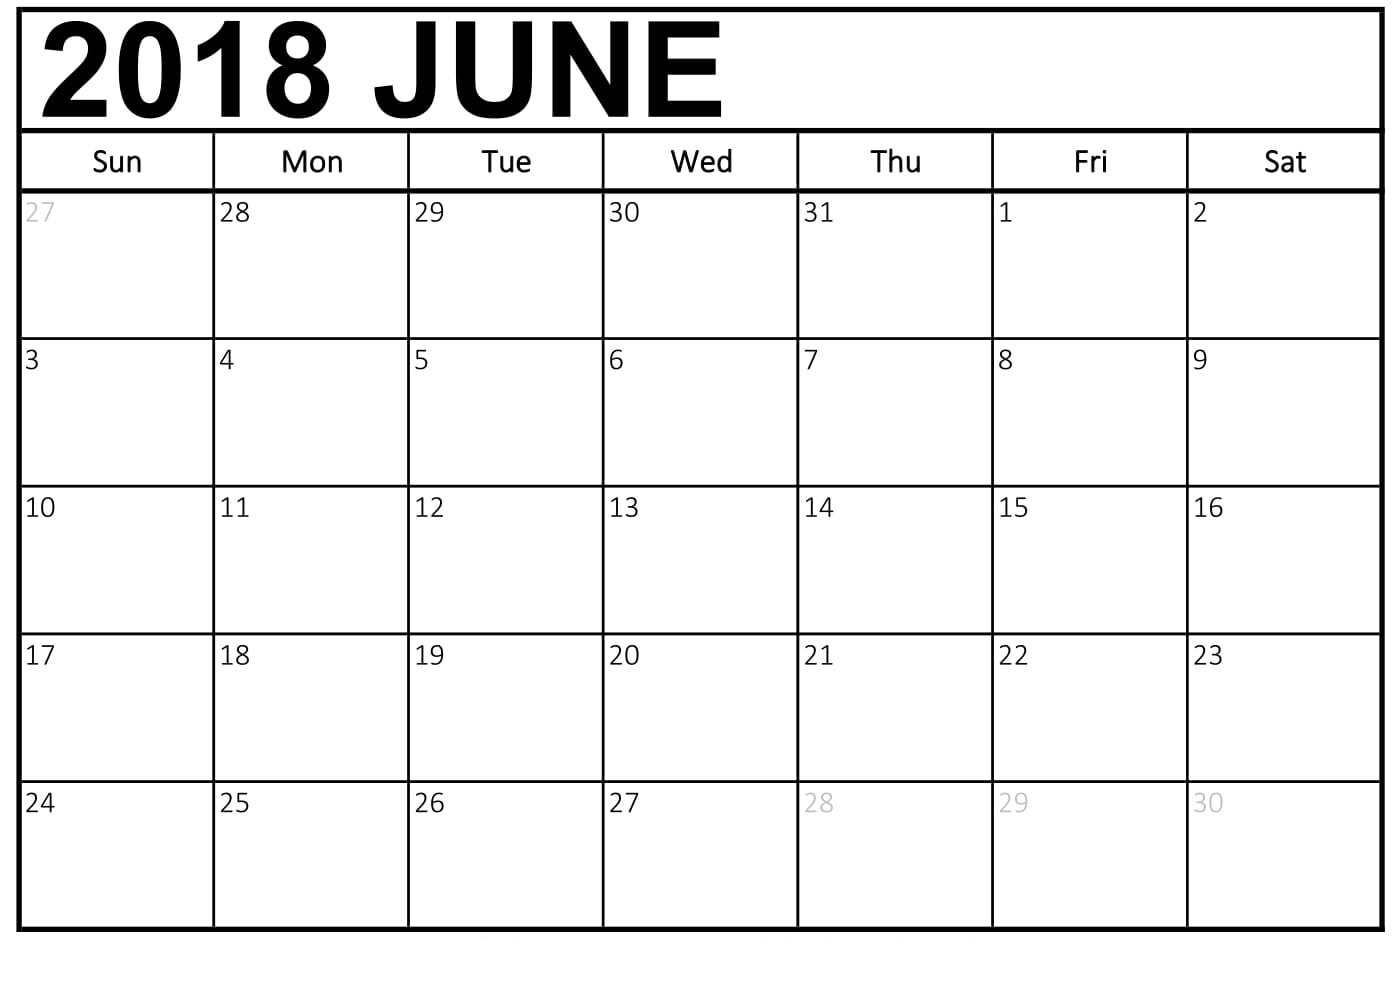 Download June 2018 Calendar